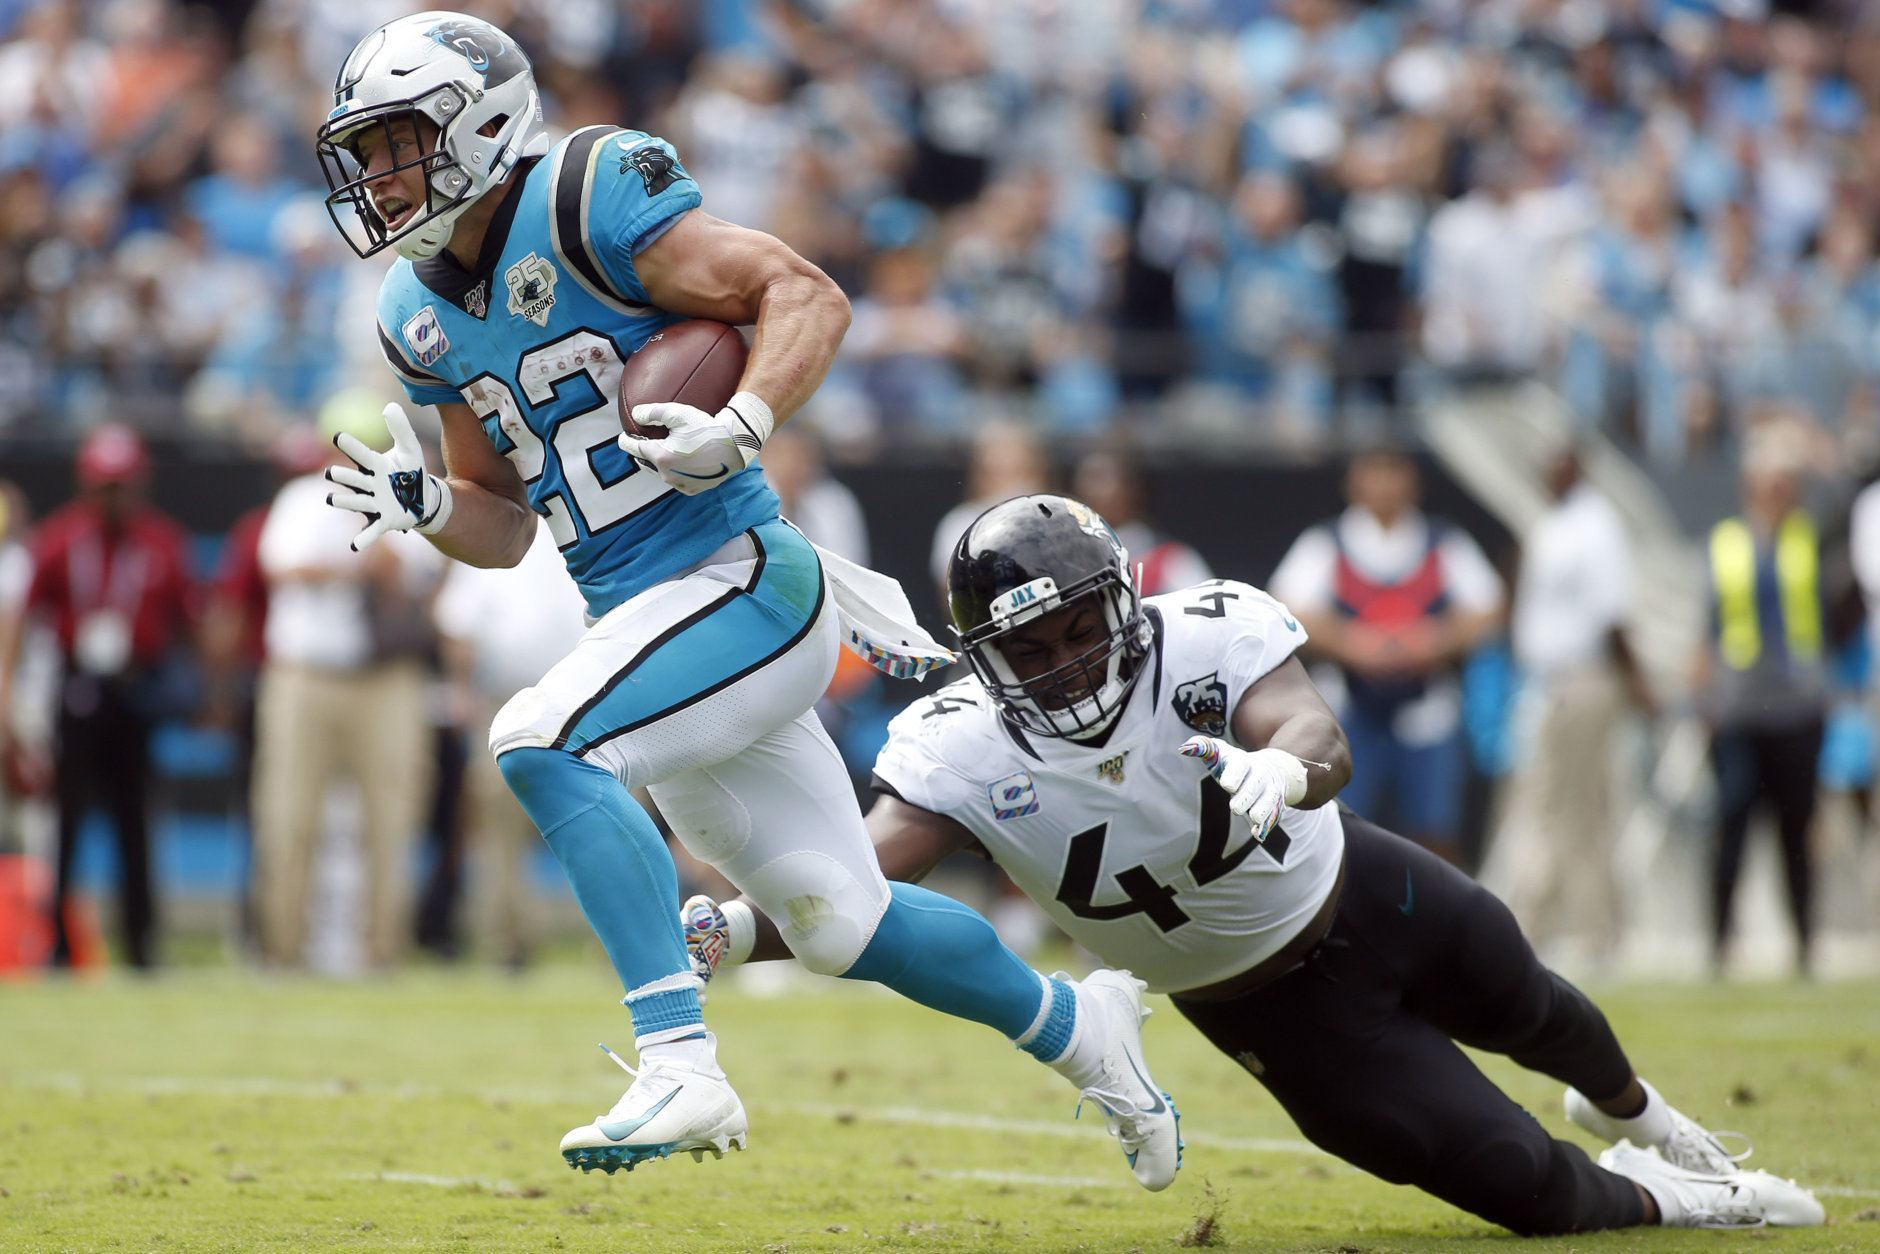 "<p><b><i>Jaguars 27</i></b><br /> <b><i>Panthers 34</i></b></p> <p><a href=""https://deadspin.com/gardner-minshew-has-a-new-nickname-1838621855 "">The Jock Strap King</a> couldn&#8217;t summon his Minshew Magic again so the focus of this game is where it belongs: On Carolina&#8217;s Christian McCaffrey, only the second player in NFL history with at least 175 scrimmage yards in four of his team&#8217;s first five games of the season. If he keeps doing the heavy lifting for <a href=""https://profootballtalk.nbcsports.com/2019/10/03/over-a-quarter-of-panthers-roster-on-injury-report/"">the injury-depleted Panthers</a>, MVP is a two-horse race between McCaffrey and Patrick Mahomes.</p>"